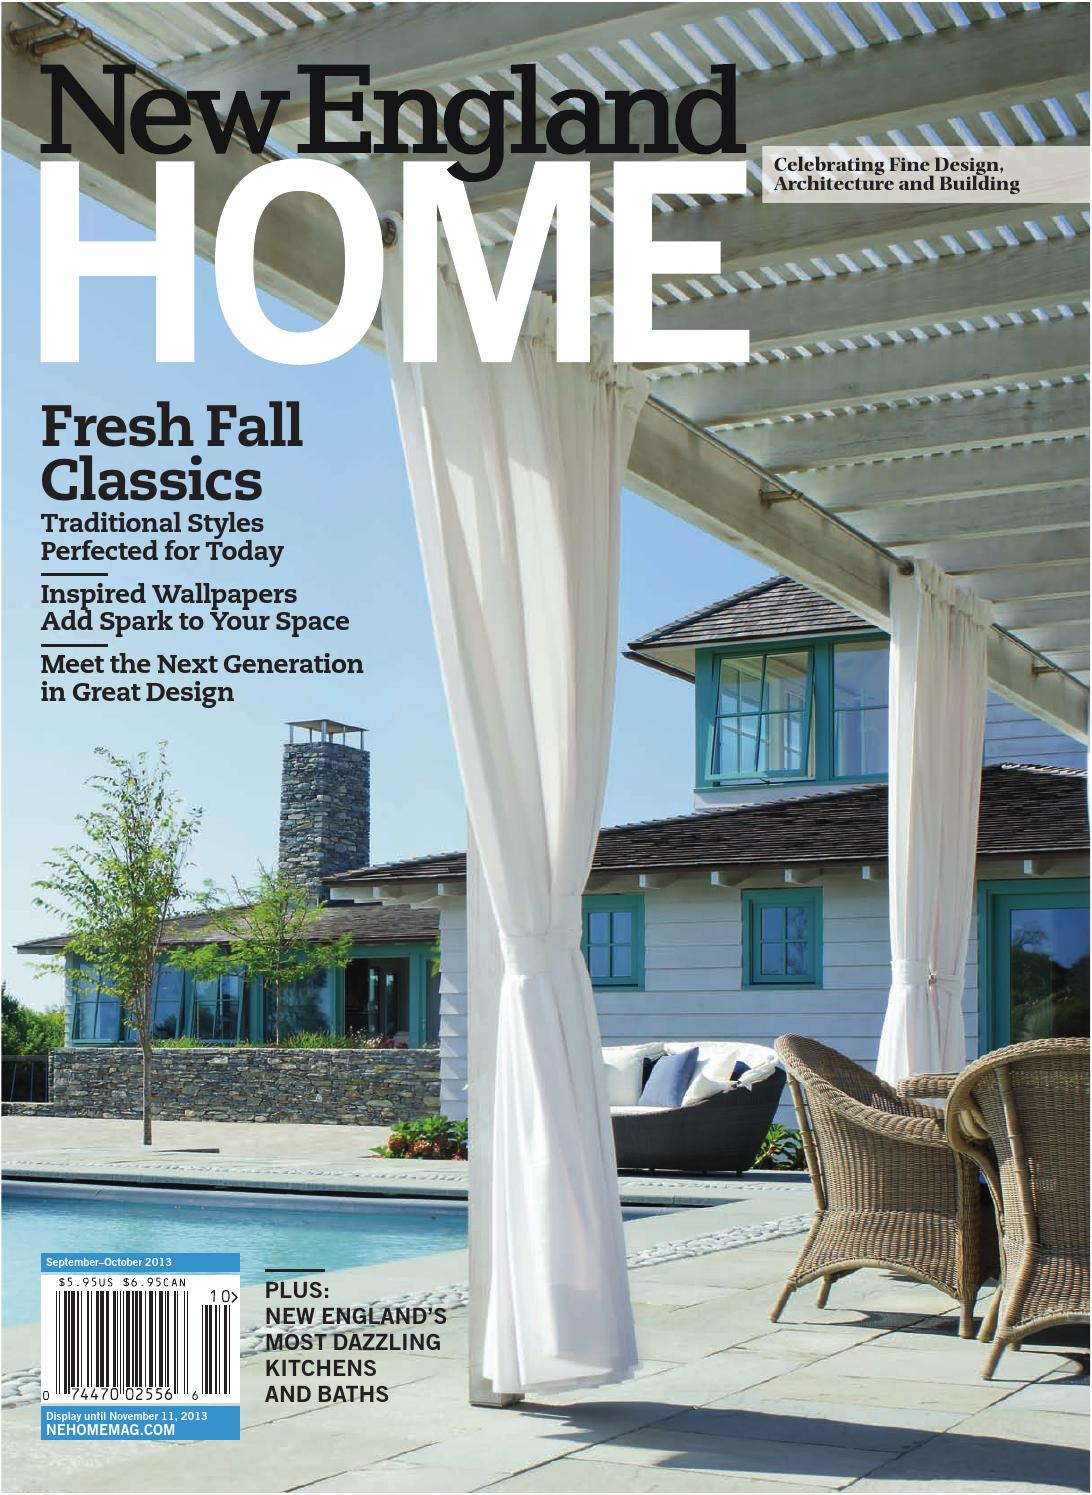 New england home jan feb 2013 by network communications inc.   issuu